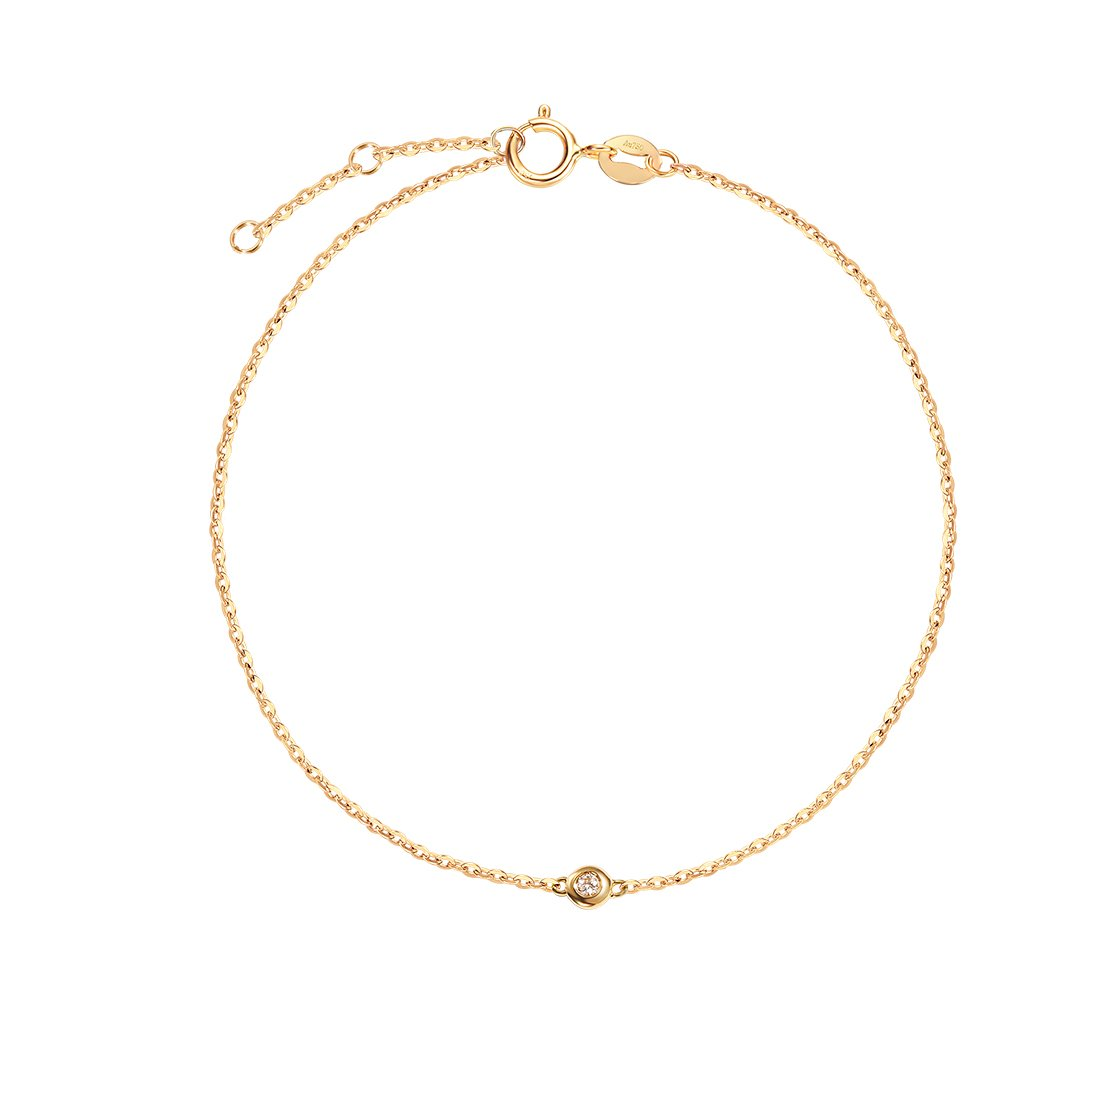 Carleen 18K Solid Gold One Diamond Bracelet Minimalist Dainty Delicate Fine Jewelry for Women Girls (Yellow Gold) by Carleen